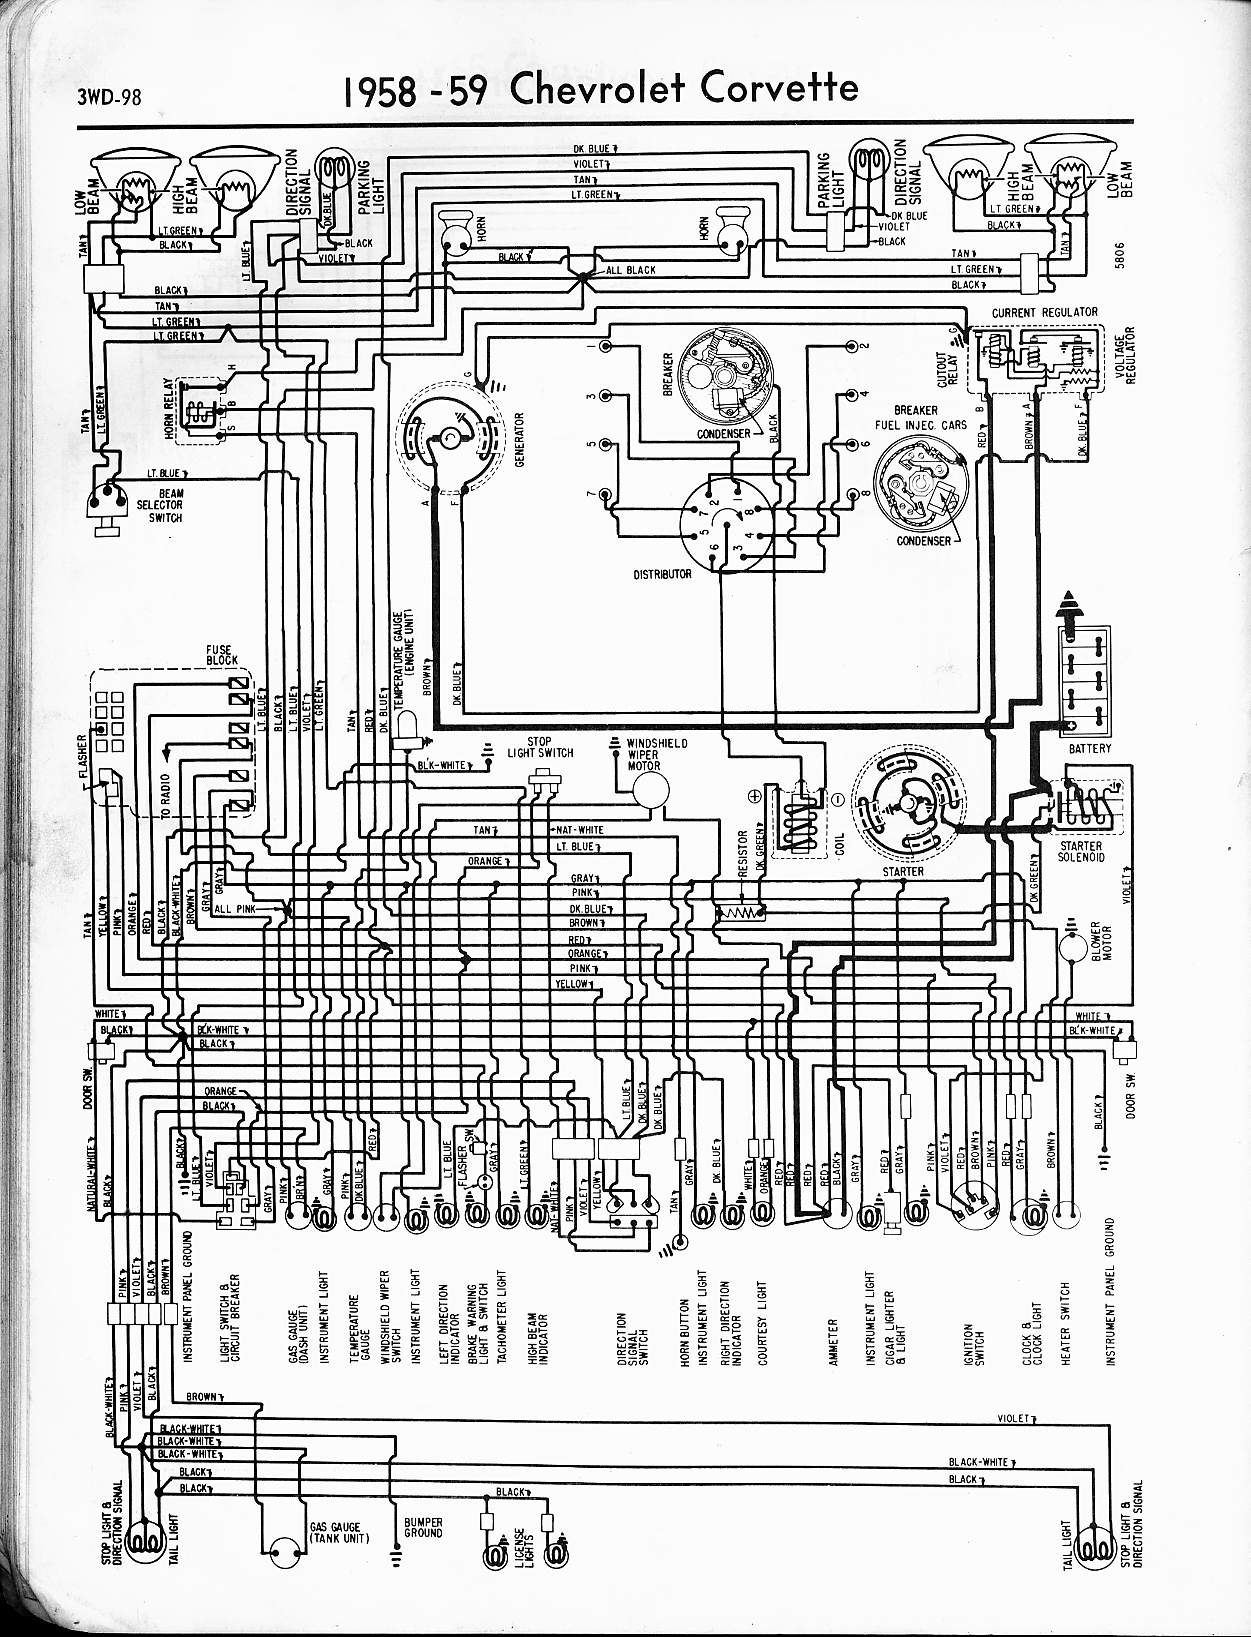 2004 corvette wiring diagram online circuit wiring diagram u2022 rh electrobuddha co uk